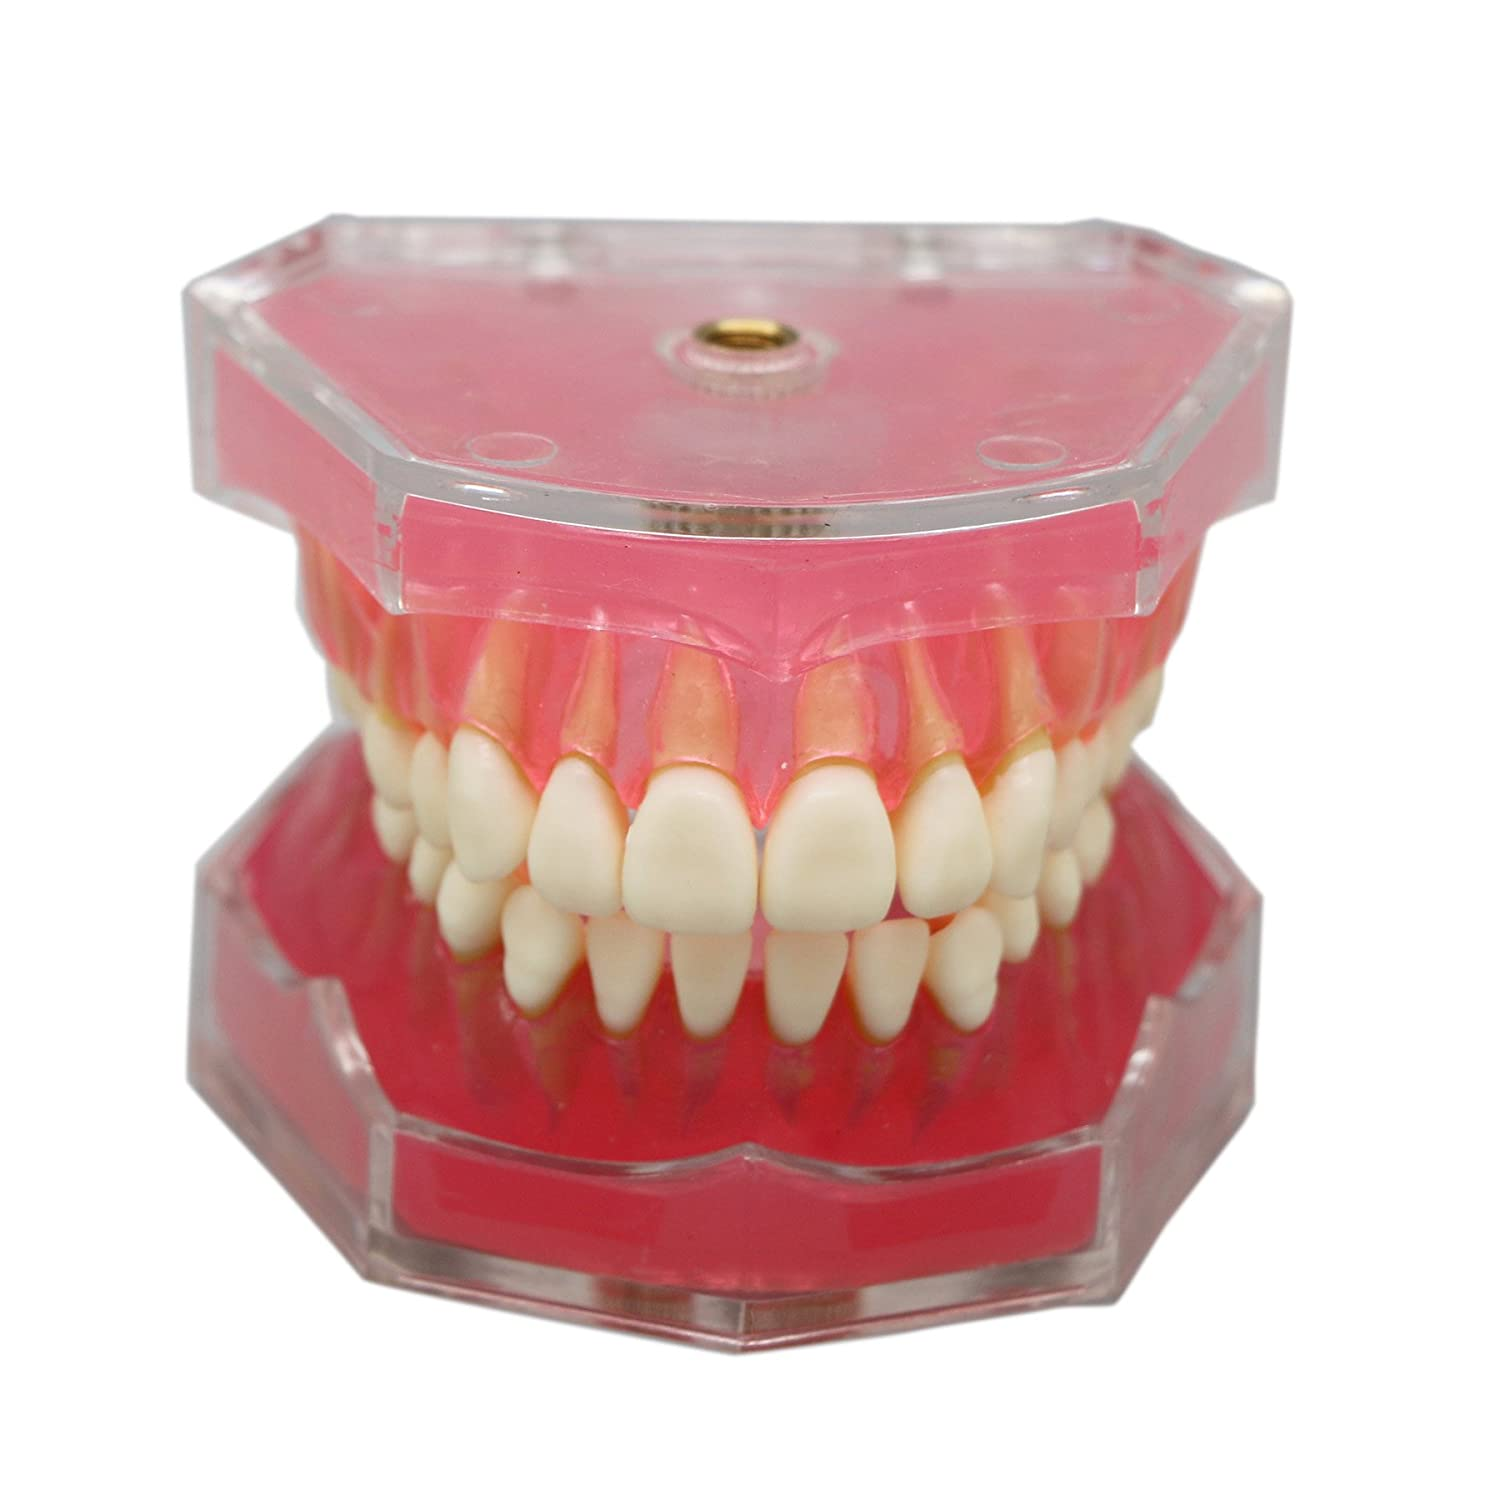 Dentalmall® 1 Pc Dental Demonstration teeth Model - Standard Study Teaching dental mode with all Removable Teeth #4004 01 xingxing